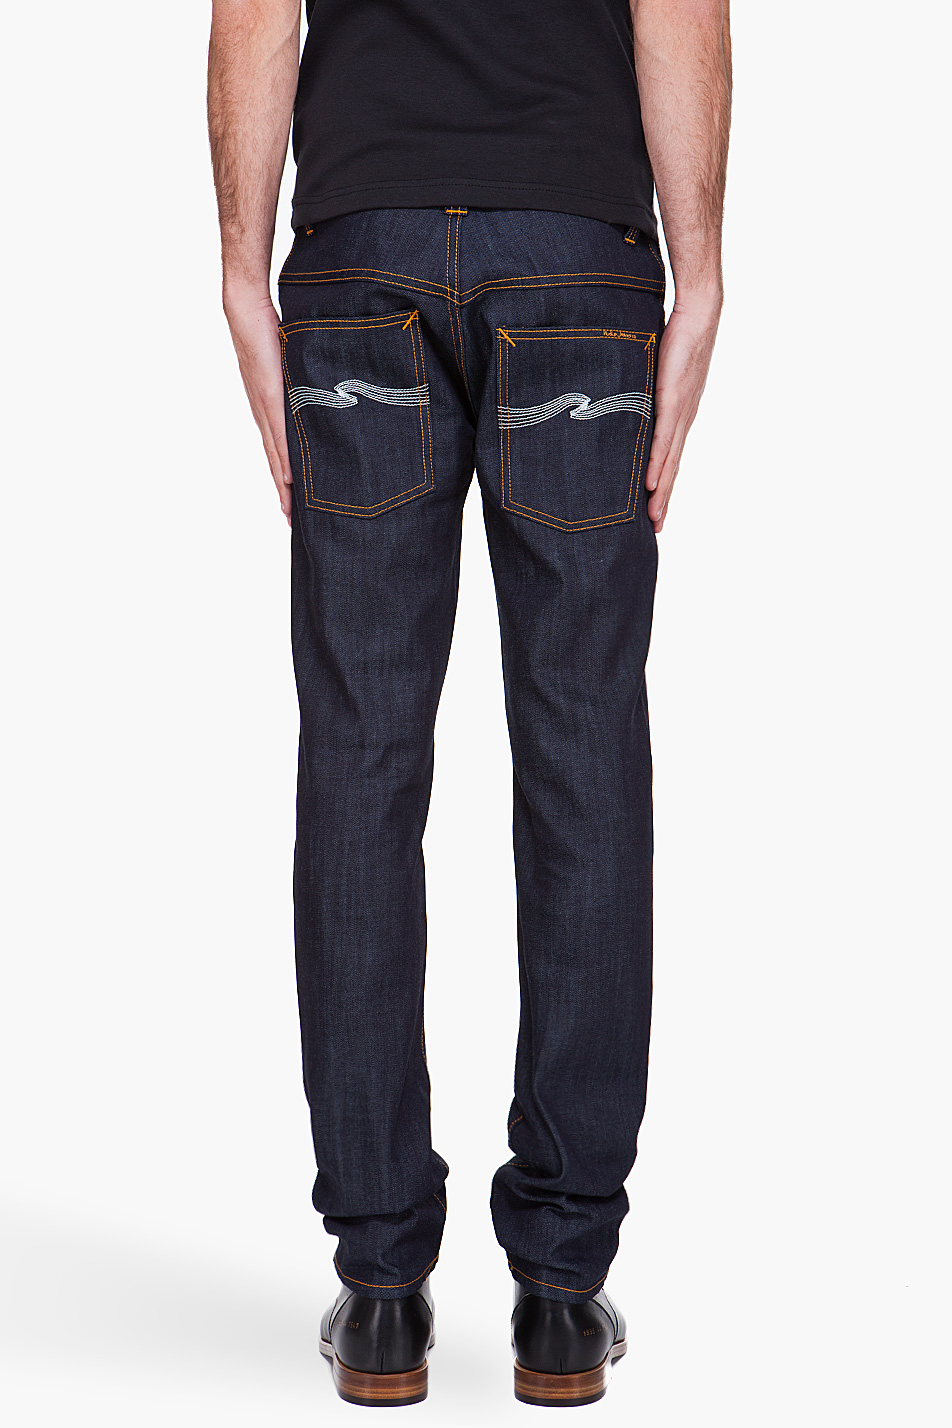 nudie jeans thin finn organic jeans in blue for men lyst. Black Bedroom Furniture Sets. Home Design Ideas